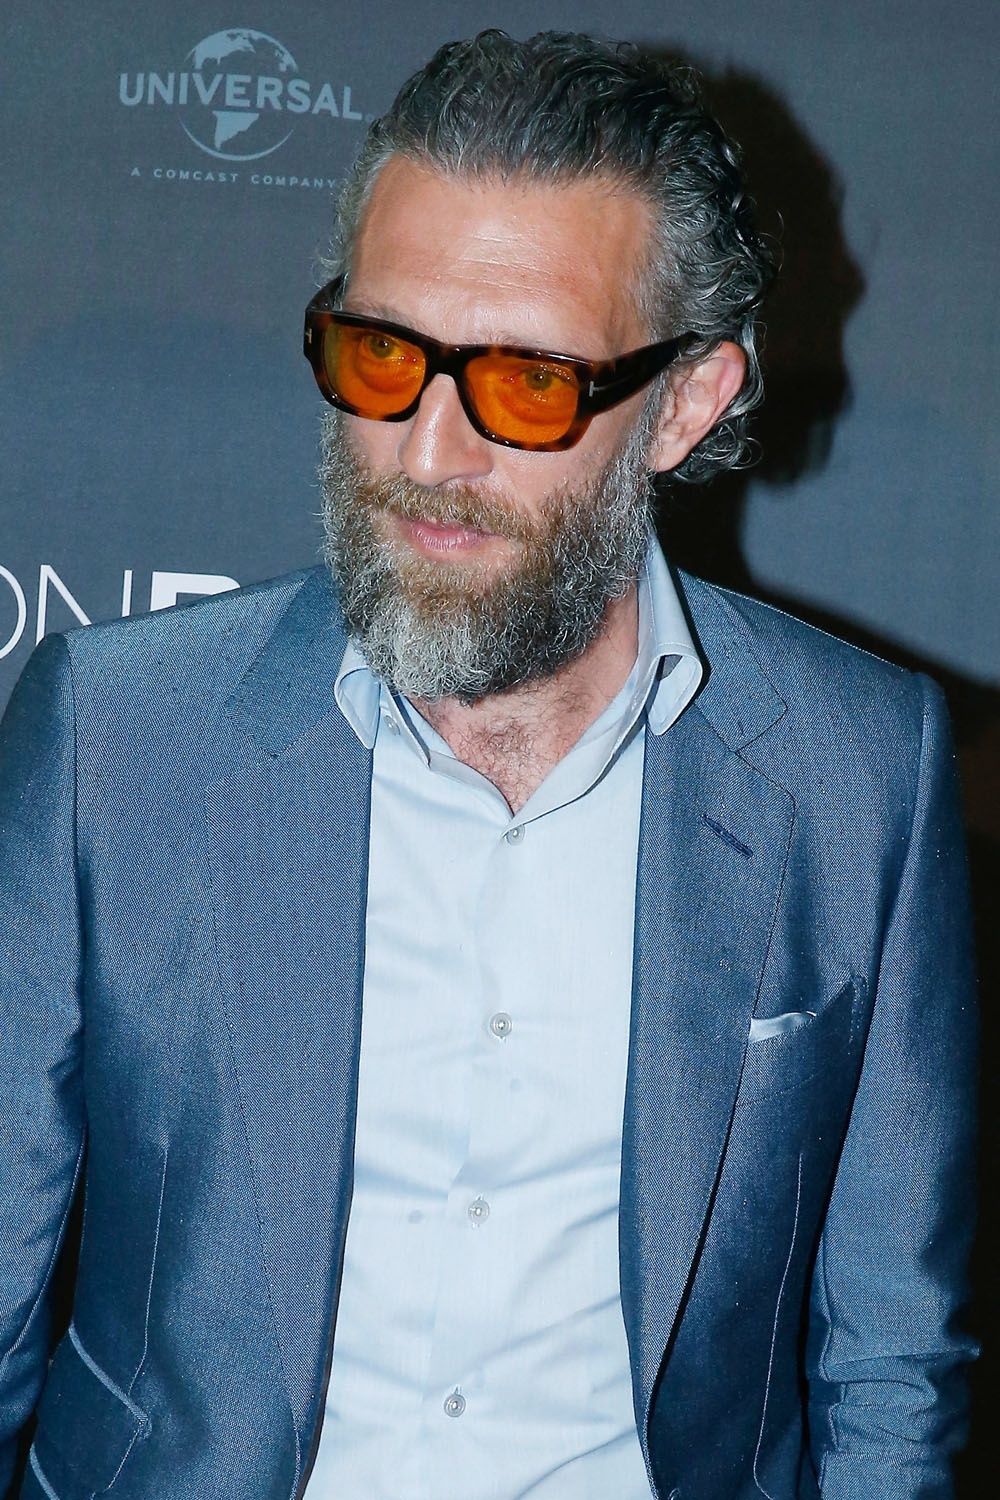 PARIS, FRANCE - JULY 12:  Actor Vincent Cassel attends the 'Jason Bourne' Paris Premiere at Cinema Pathe Beaugrenelle on July 12, 2016 in Paris, France.  (Photo by Bertrand Rindoff Petroff/Getty Images)